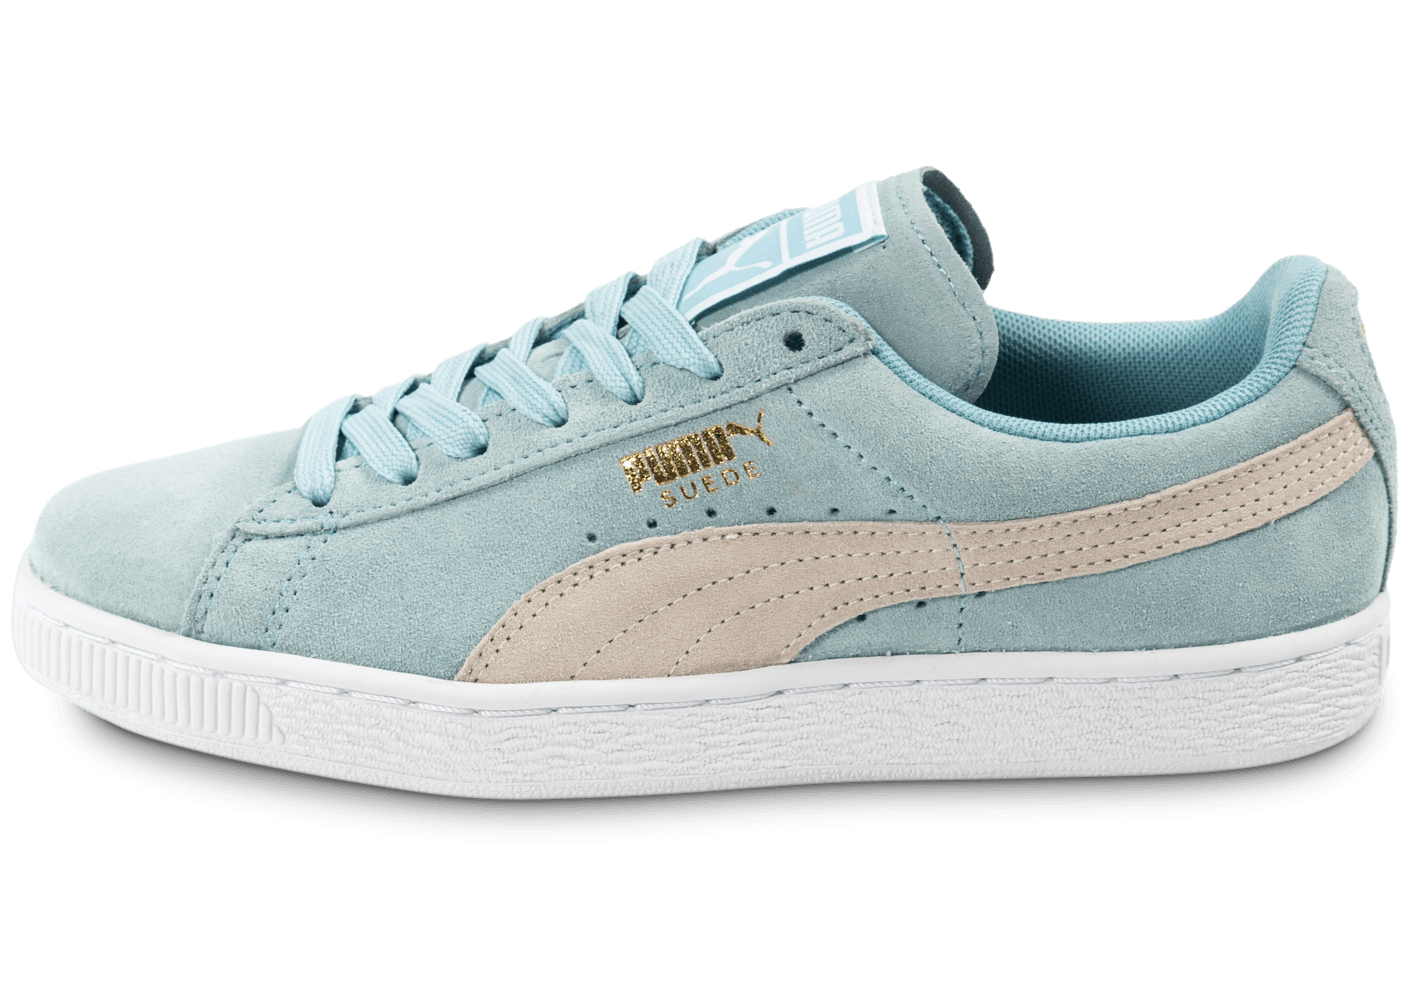 puma suede classic w bleu ciel chaussures chaussures chausport. Black Bedroom Furniture Sets. Home Design Ideas